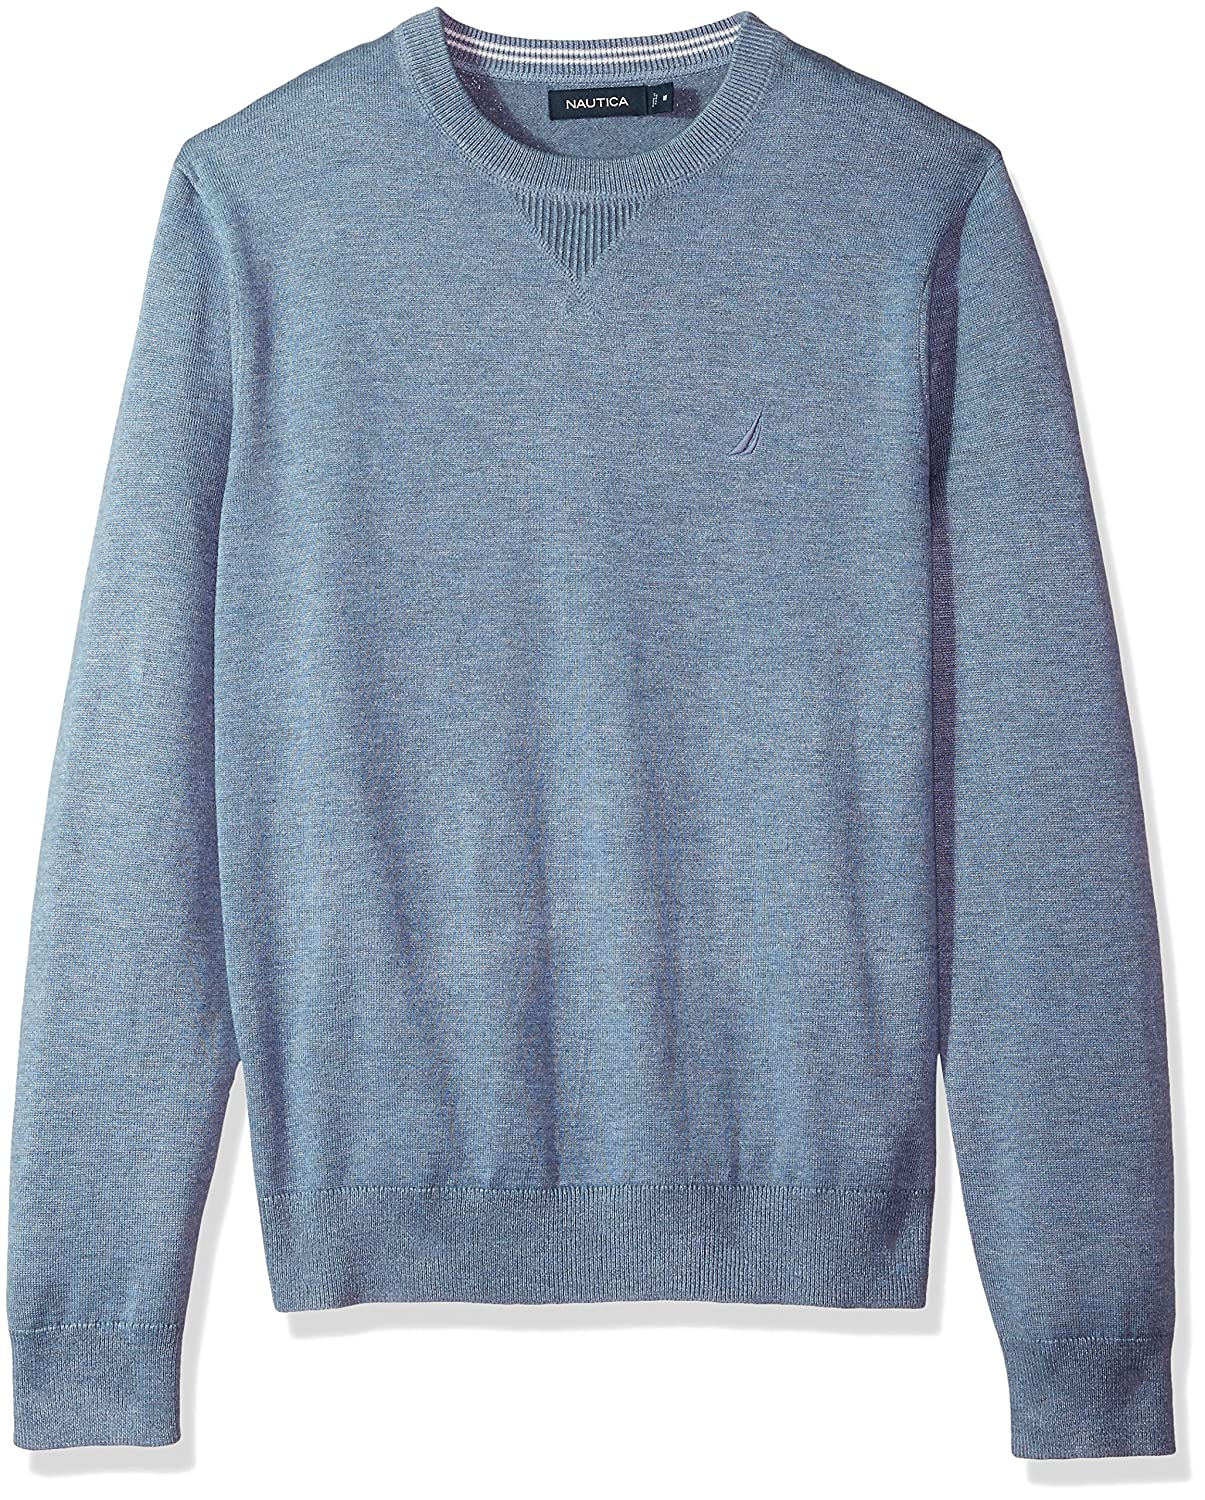 Nautica Men's Light Weight Crew Neck Solid Sweater by Nautica